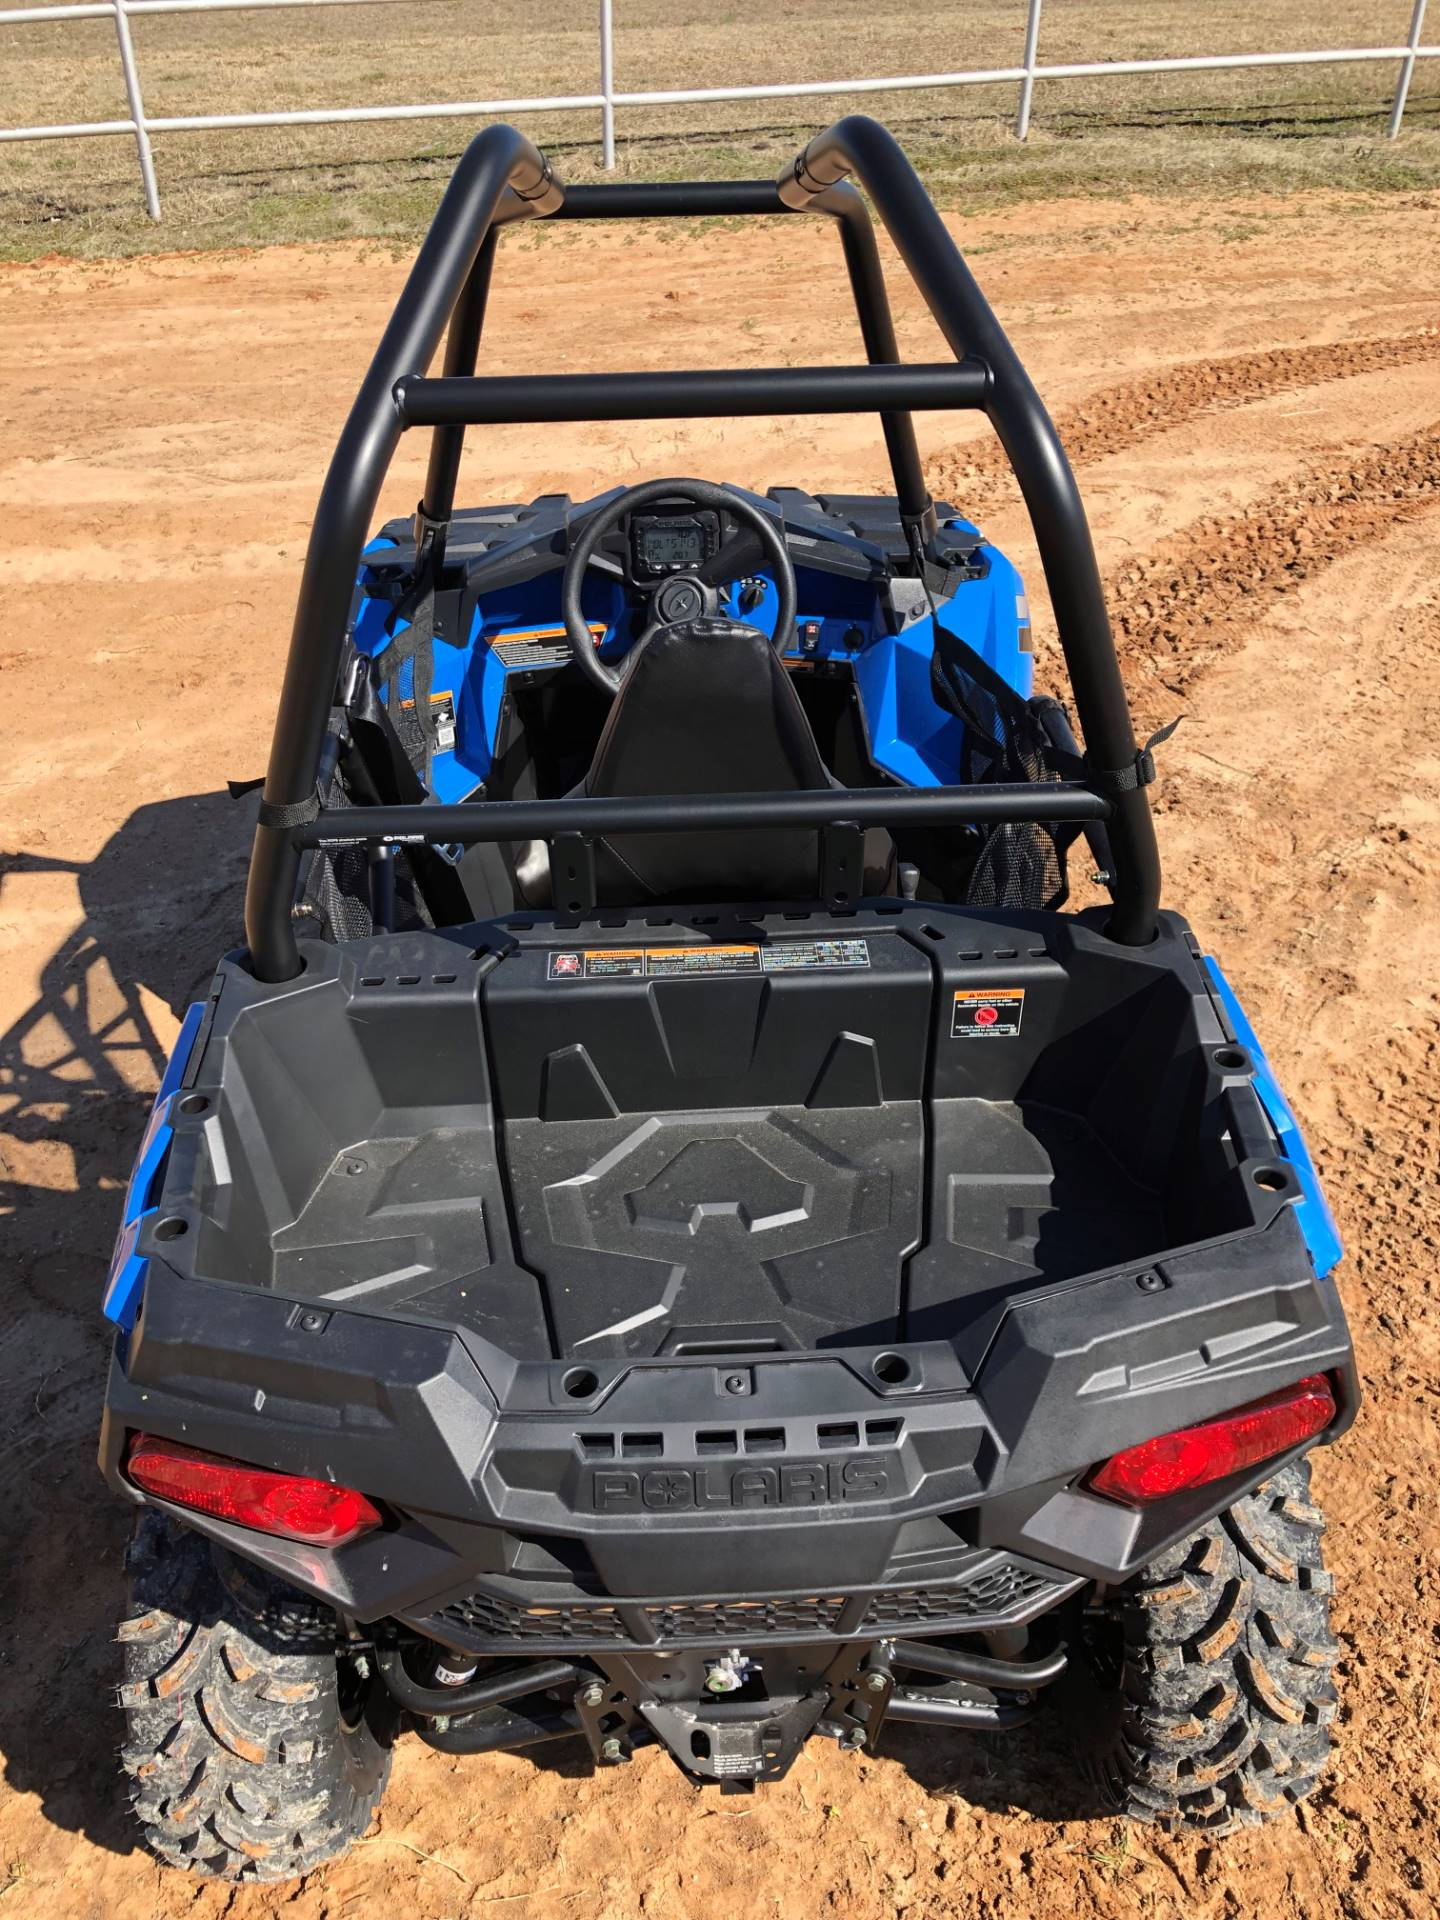 2019 Polaris Ace 500 in Ada, Oklahoma - Photo 5